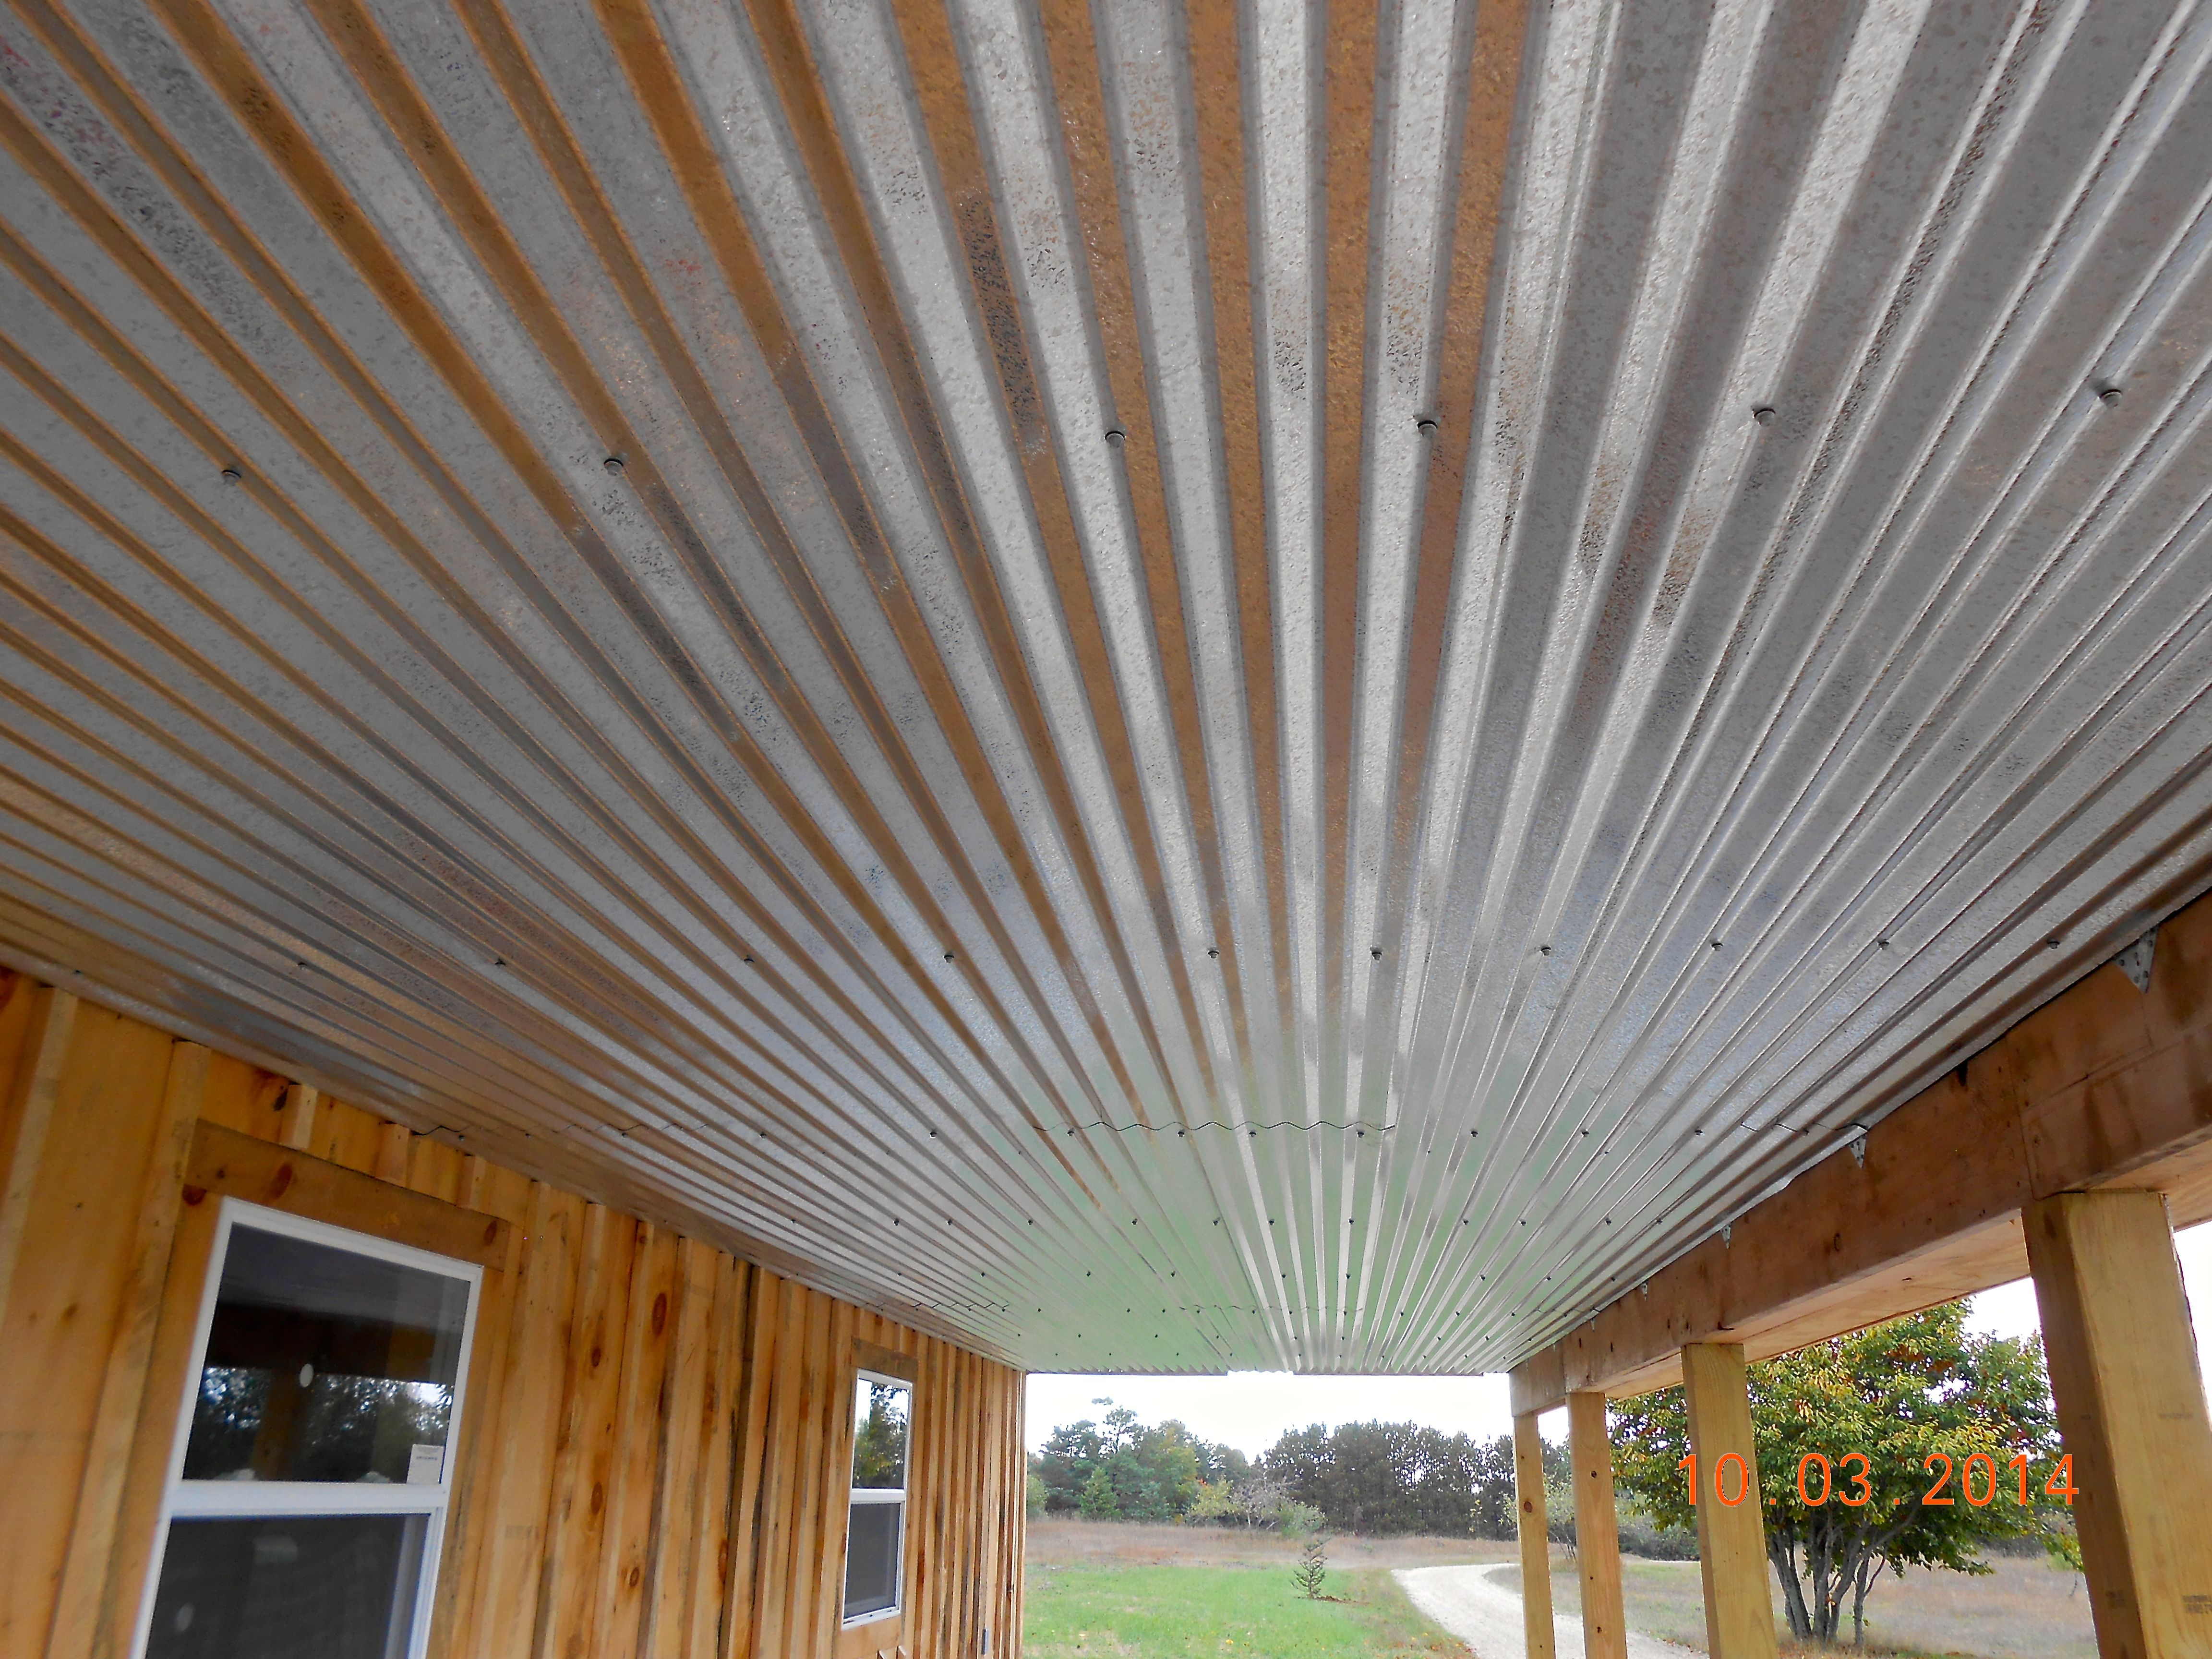 Galvanized Ceiling Galvanized Metal In 2019 Porch Ceiling intended for sizing 4608 X 3456